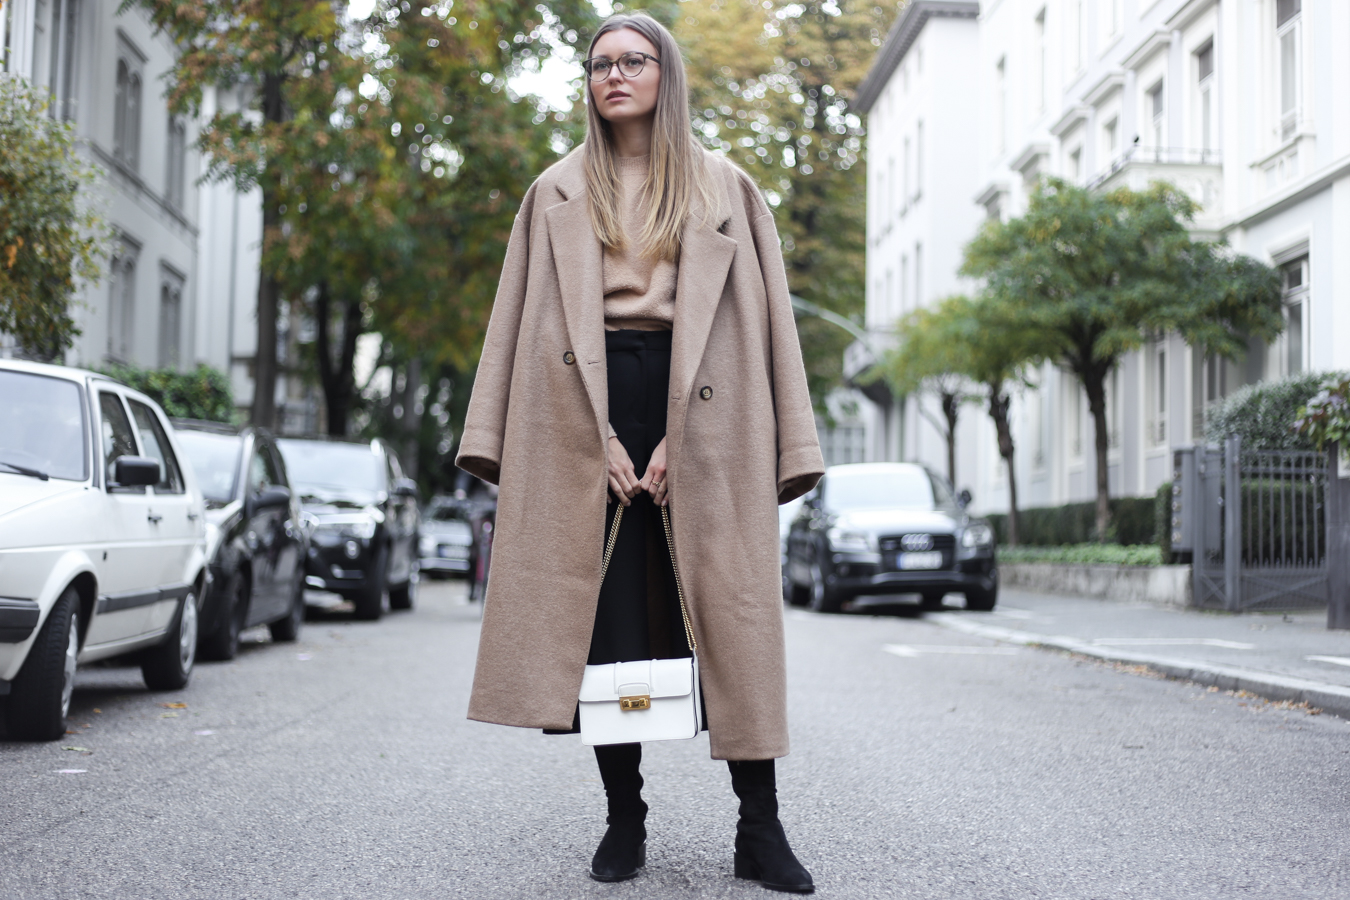 ACE & TATE GLASSES & OVERSIZED CAMEL COAT